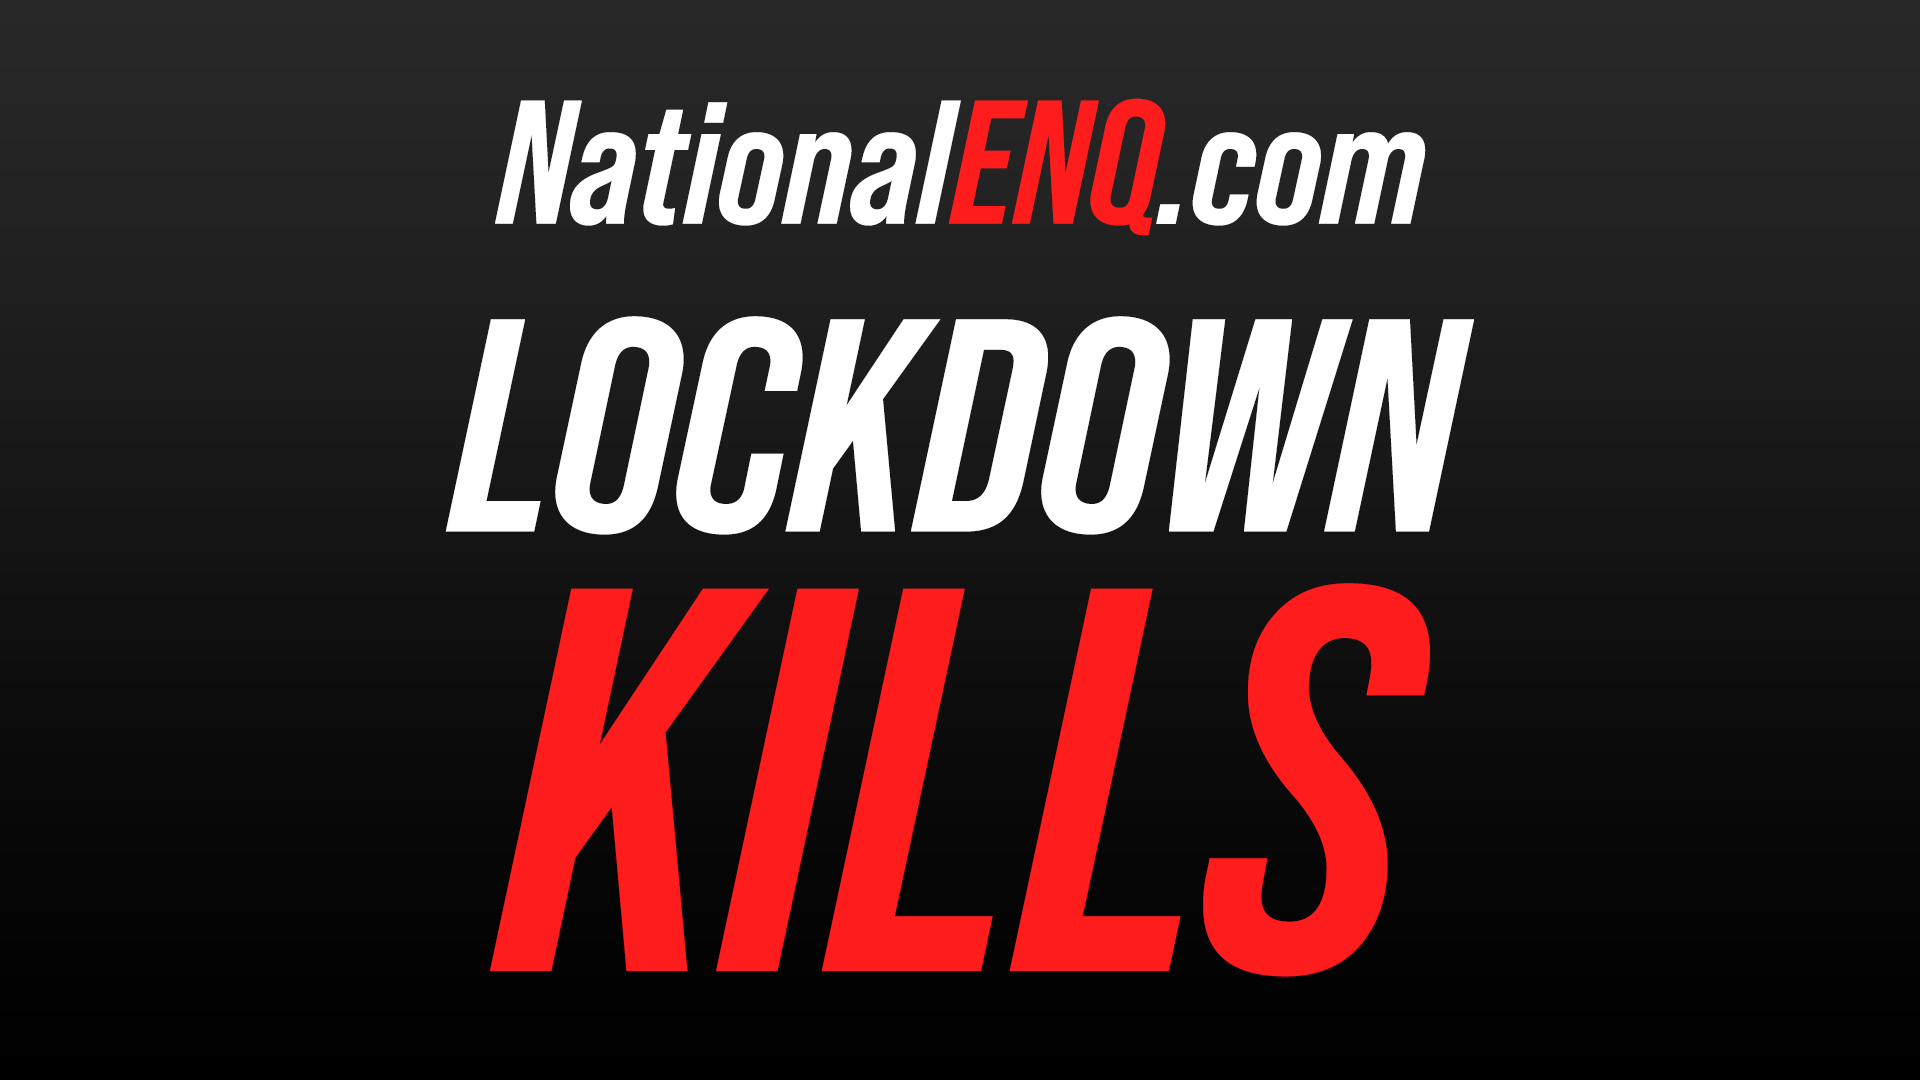 National ENQ Breaking News: Lockdown Is Worse Than Coronavirus, COVID-19, Studies Show